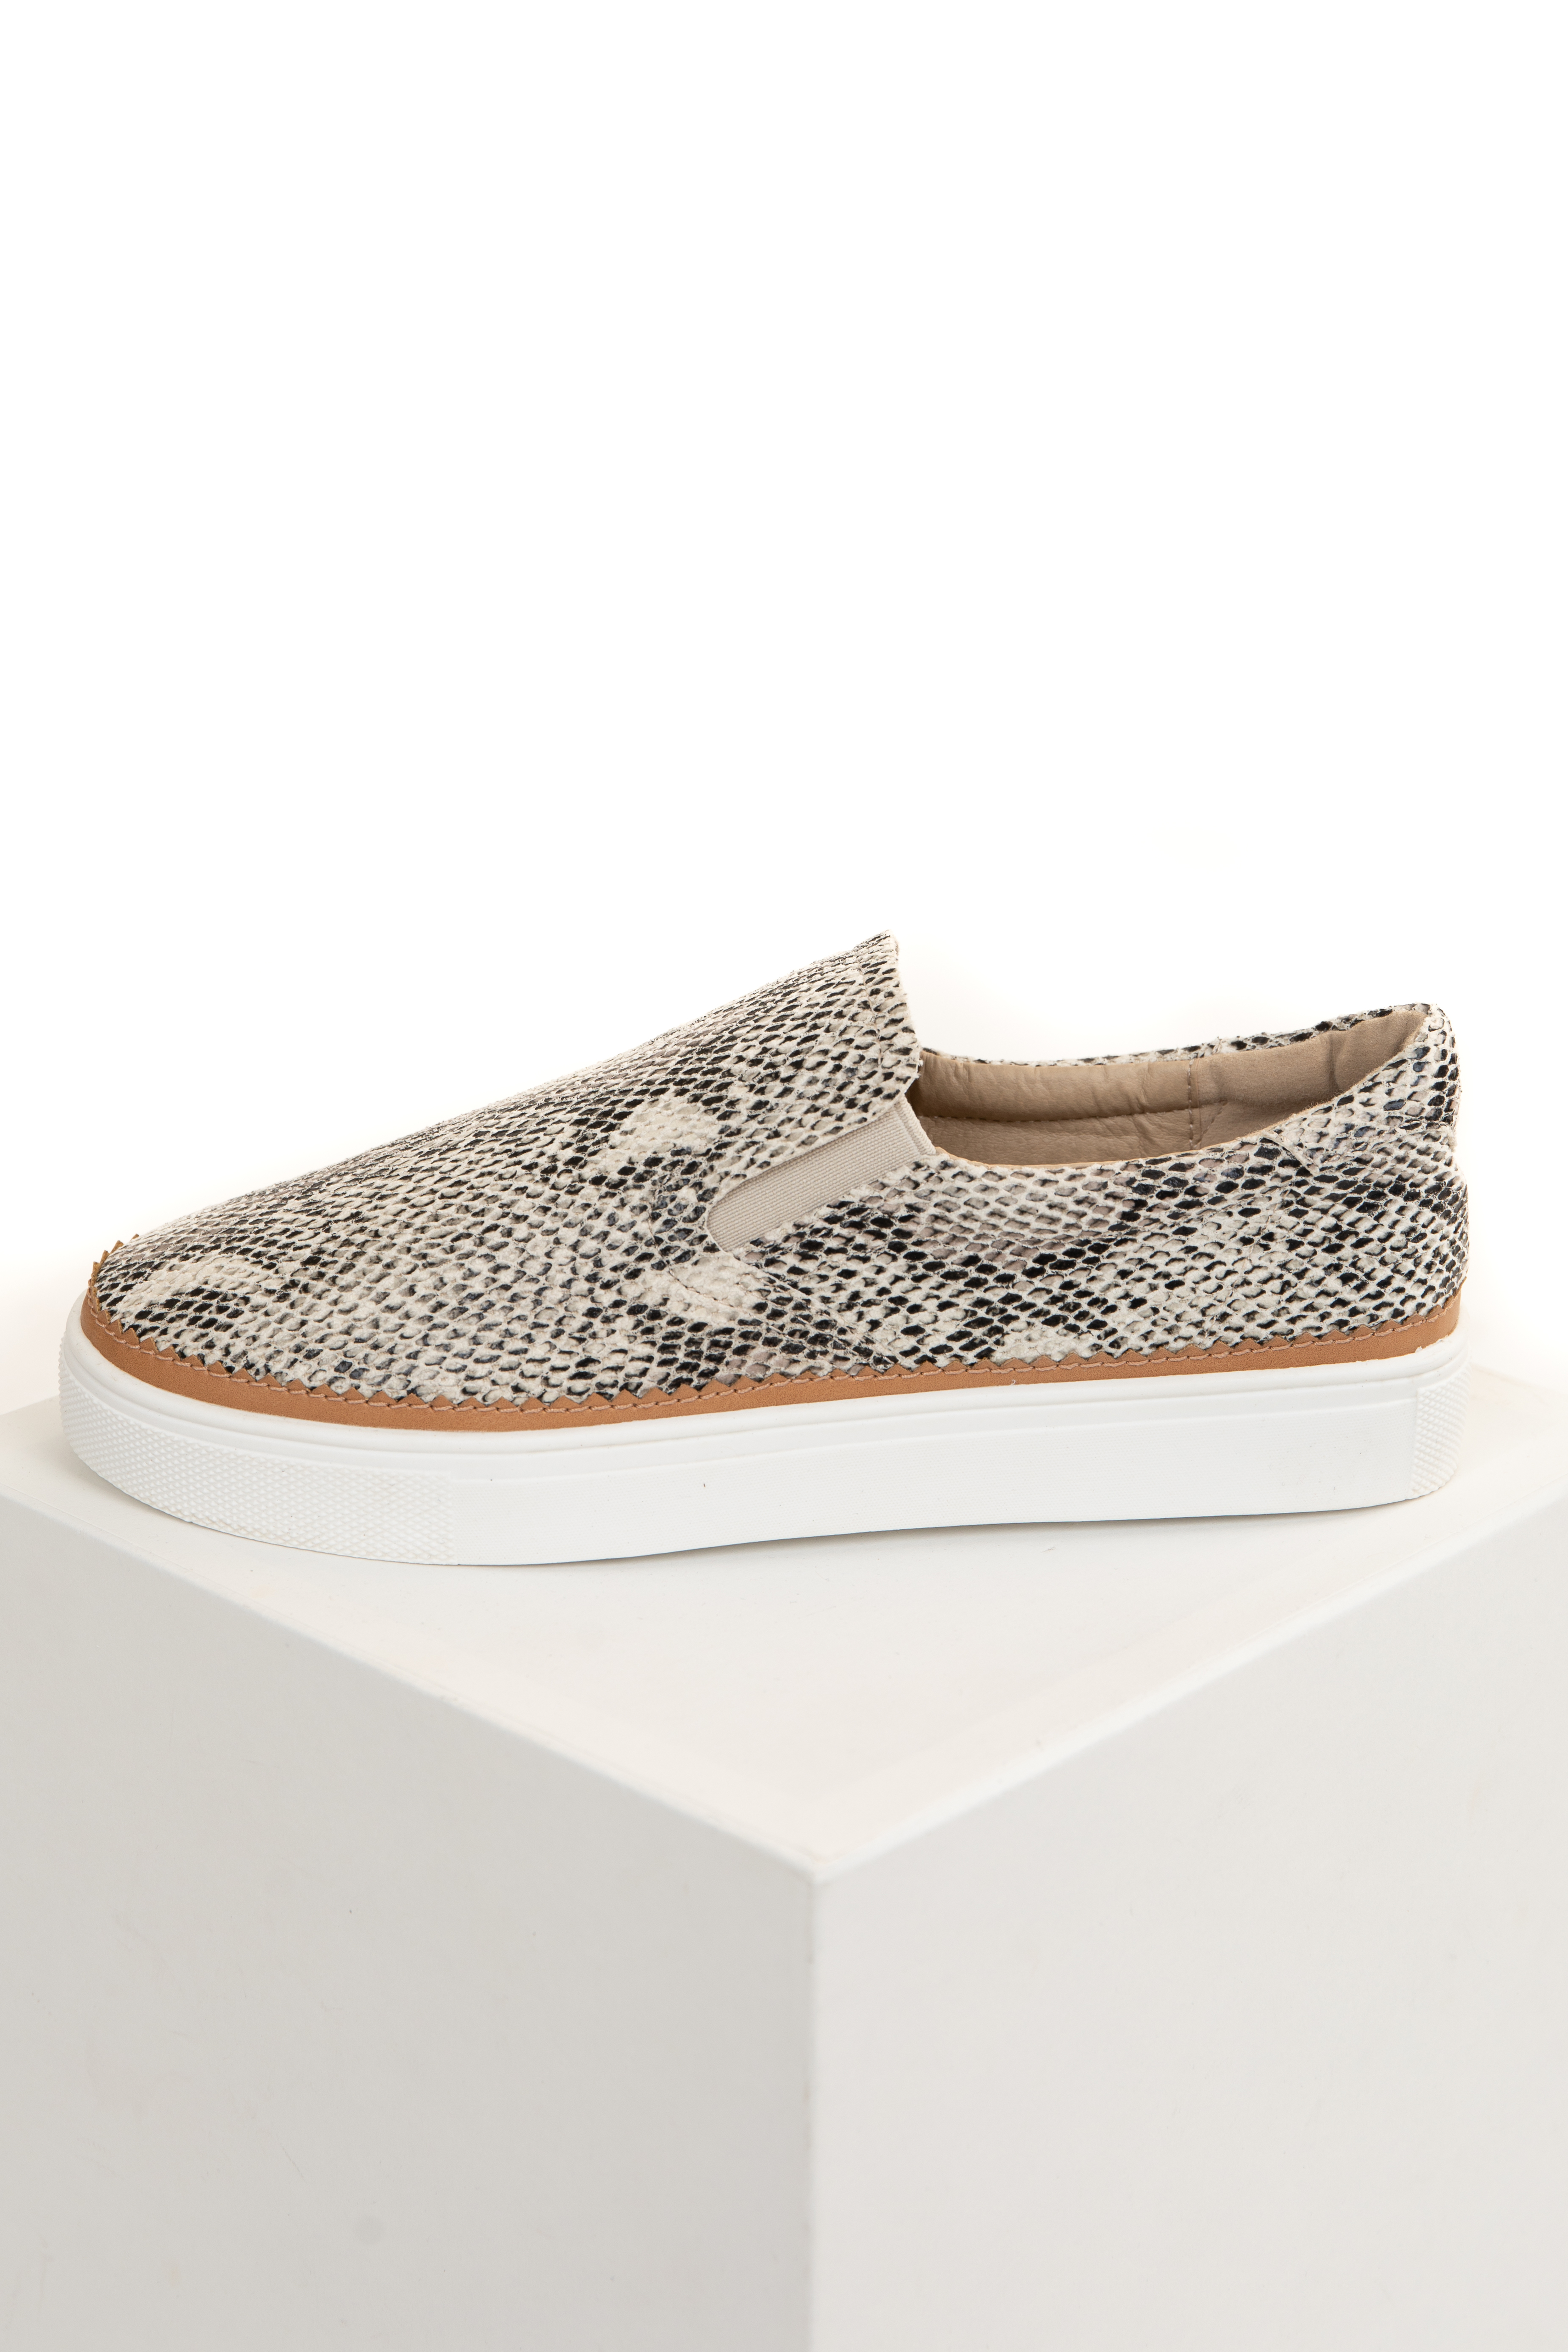 Beige Snakeskin Print Textured Slip On Sneakers